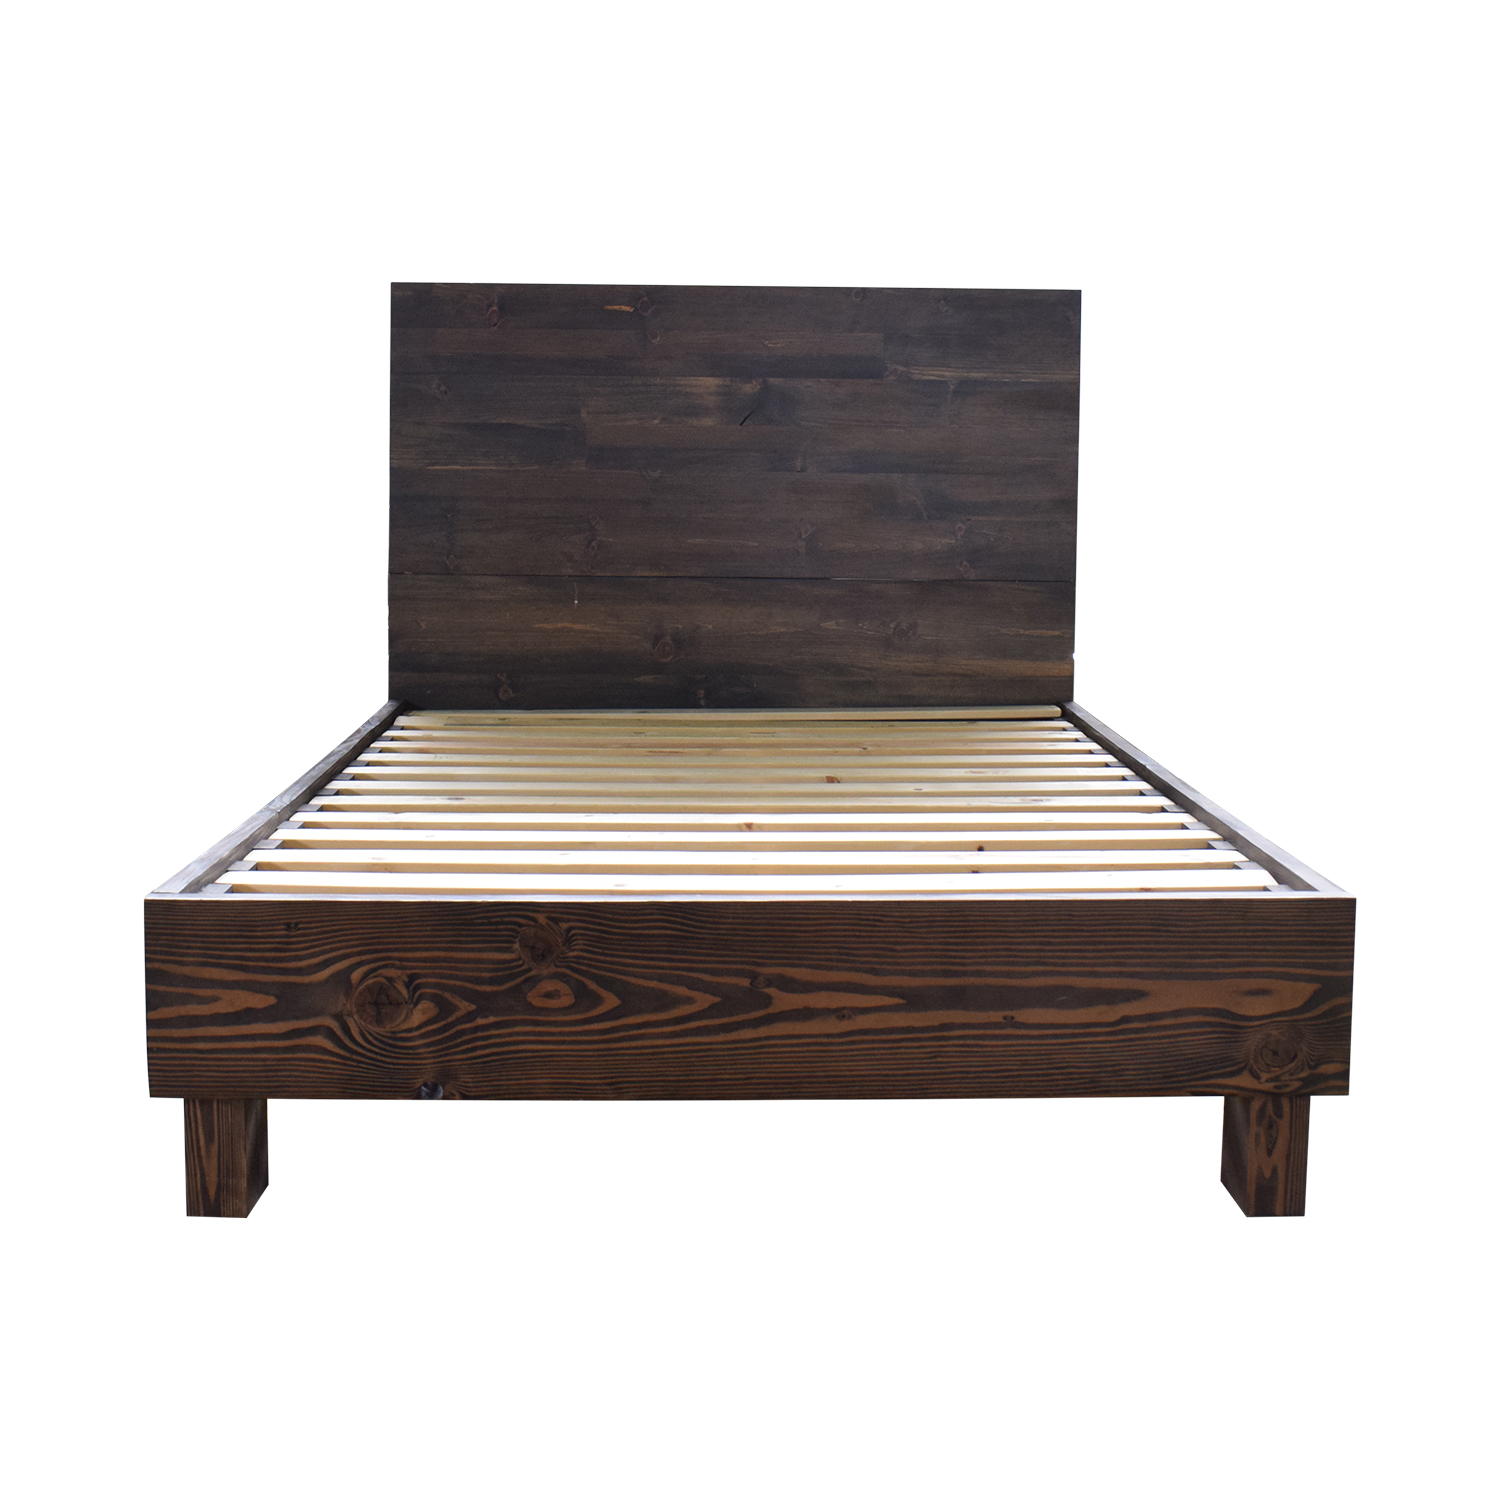 Etsy Wooden Queen Bed Frame / Beds